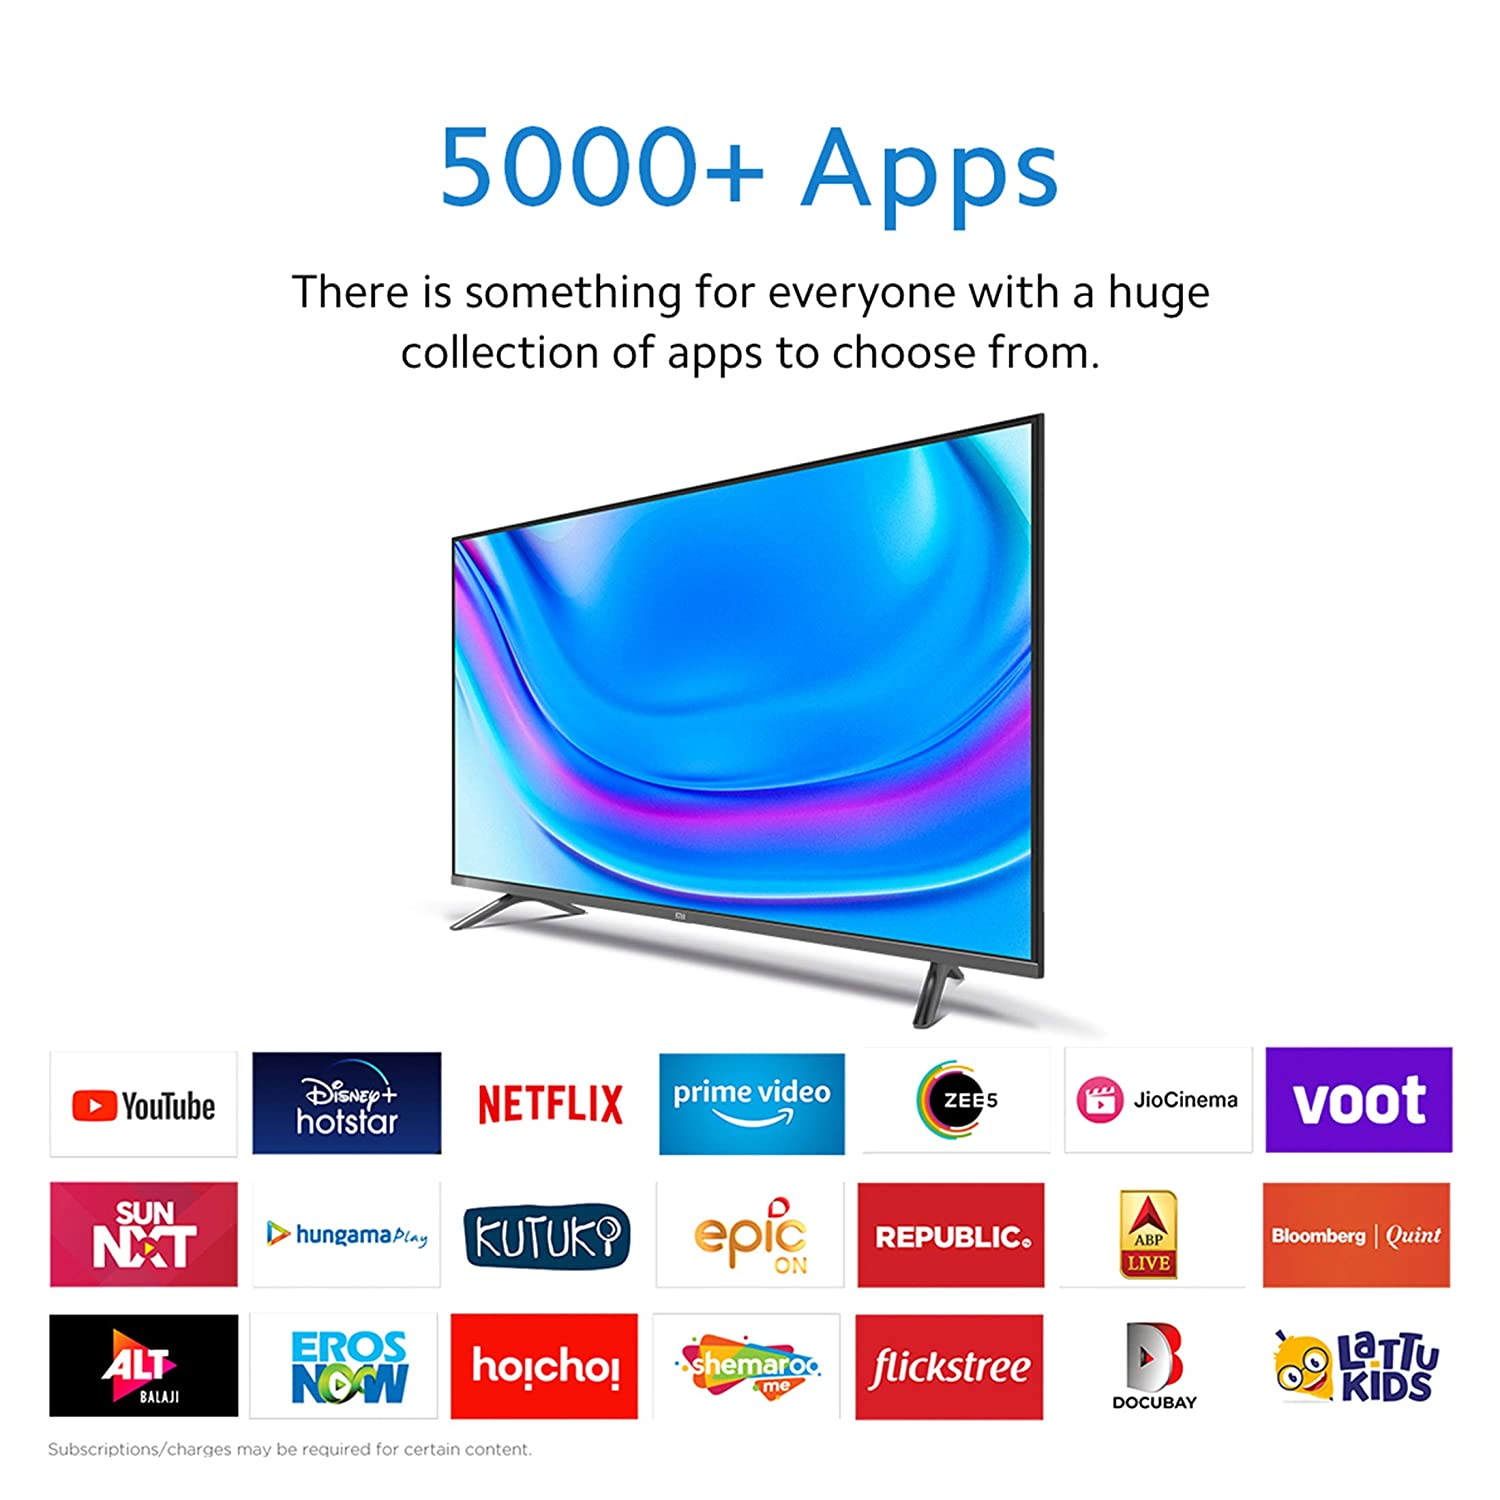 MI led smart tv 4a horizon 80 cm (32) with android